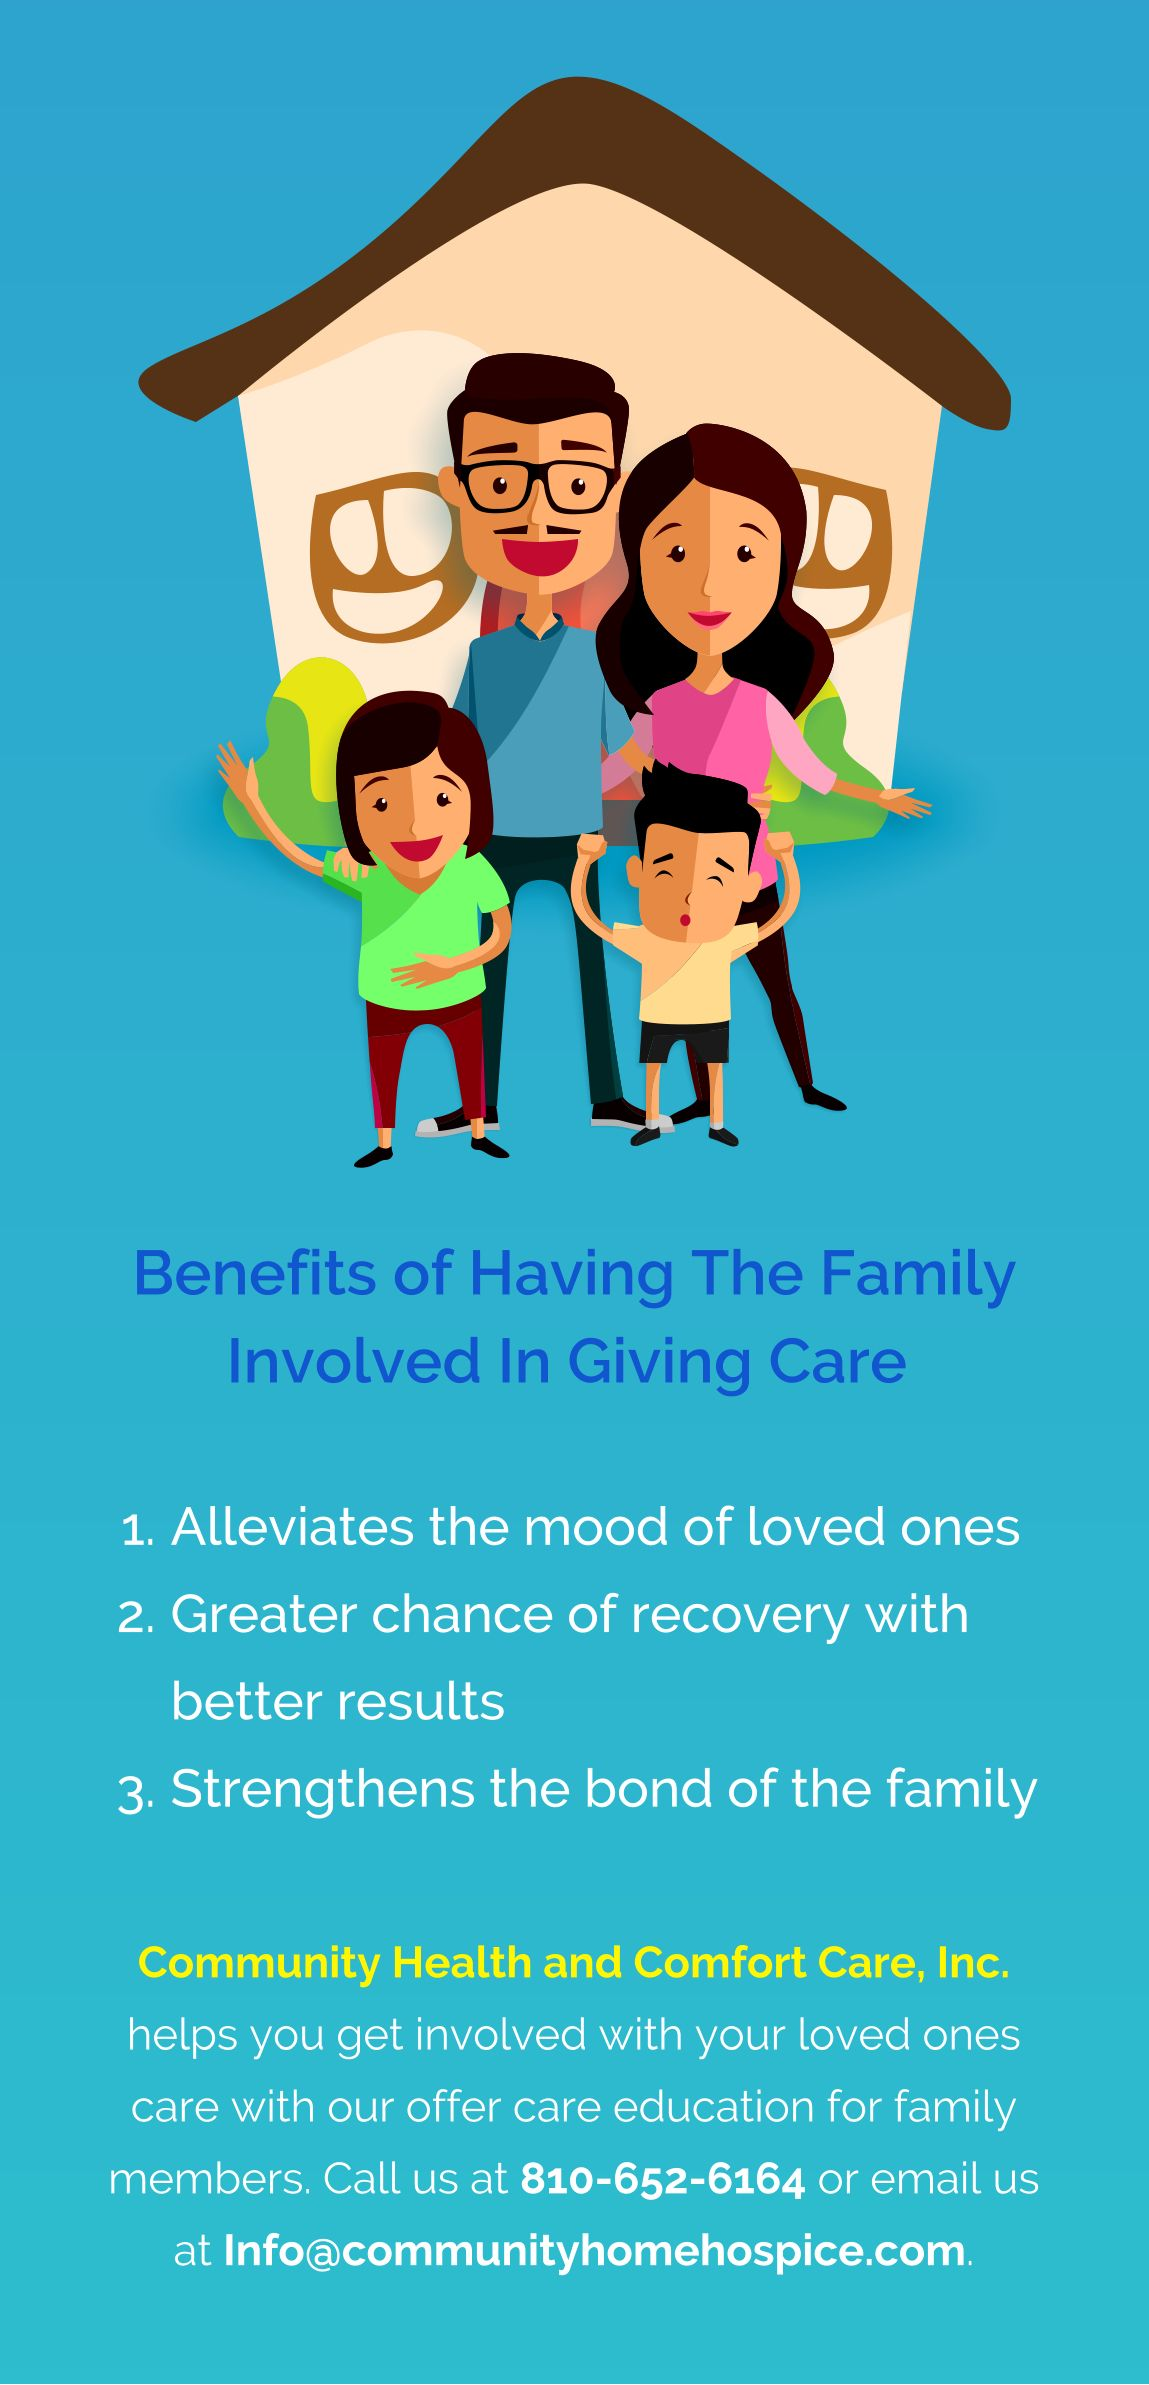 Benefits of having the family involved in giving care